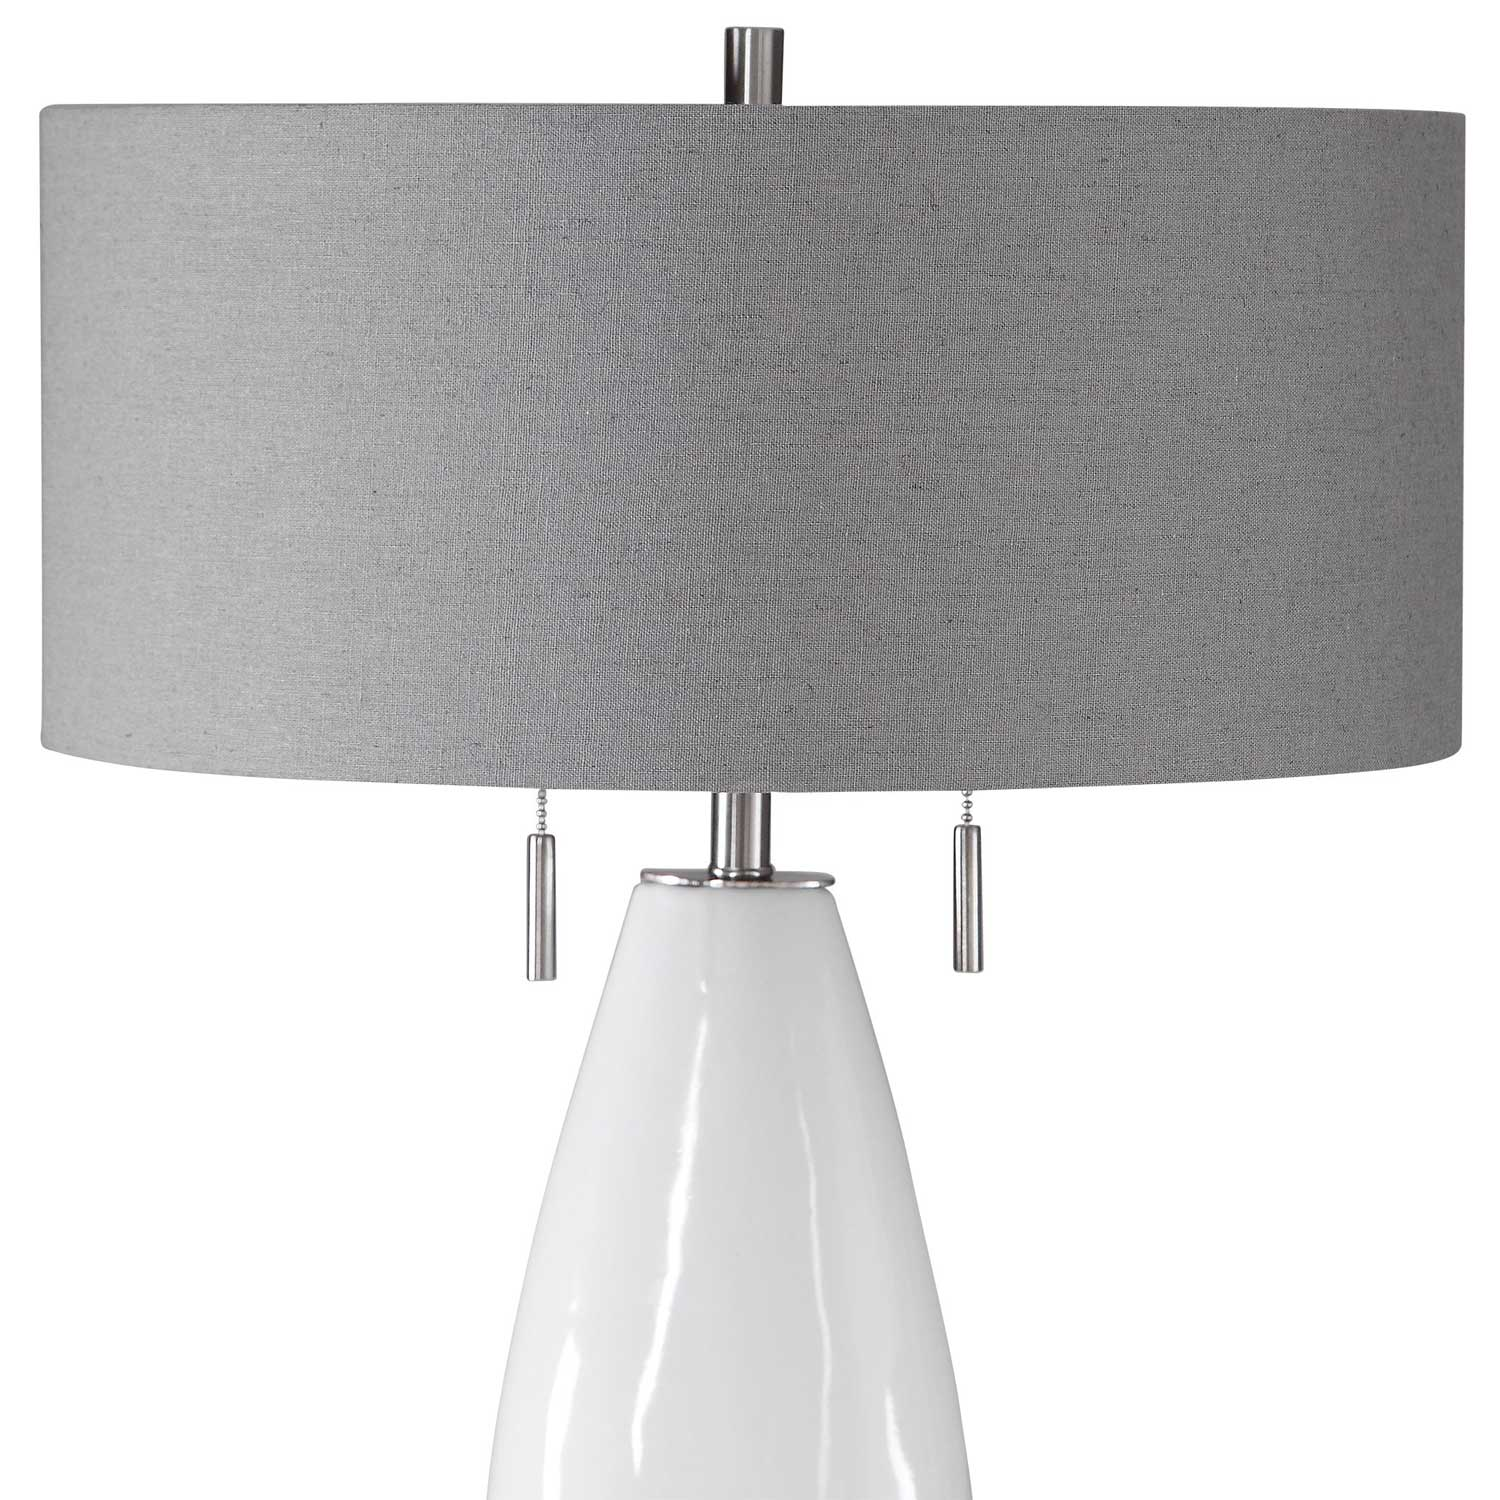 Uttermost Laurie Table Lamp - White Ceramic